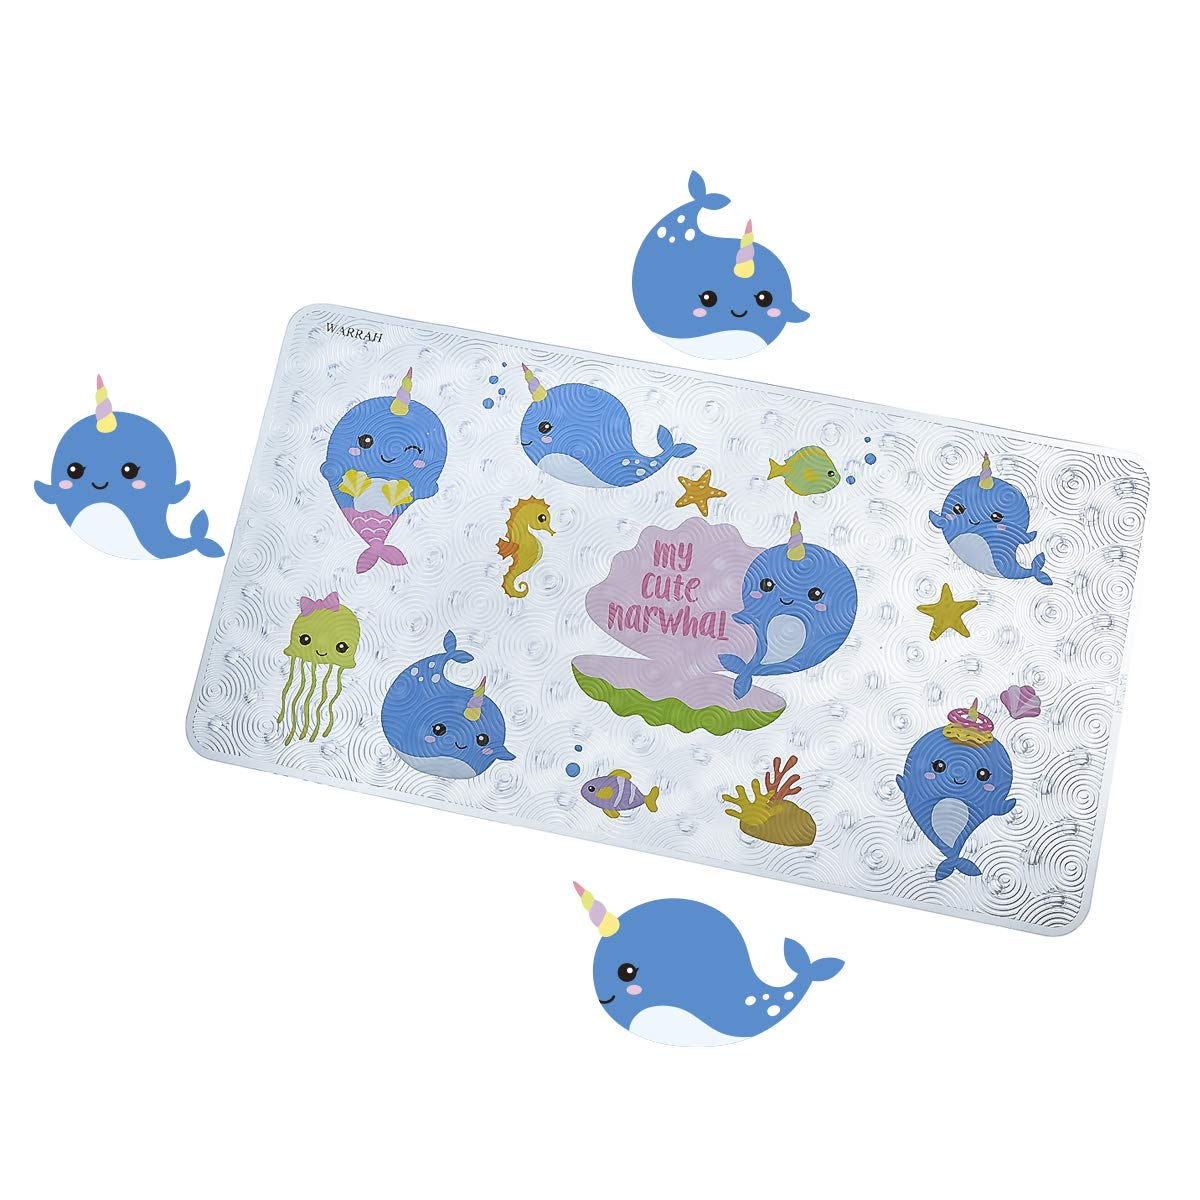 B07R6K6RVC WARRAH Non Slip Baby Bath Mat for Kids and Toddler - Slip Resistant Square Bath Mats for Tub and Bathroom Floor Shower - No Slip Bathtub Matts for Kids (Blue Whale FHD-04) 71r7l7dynWL